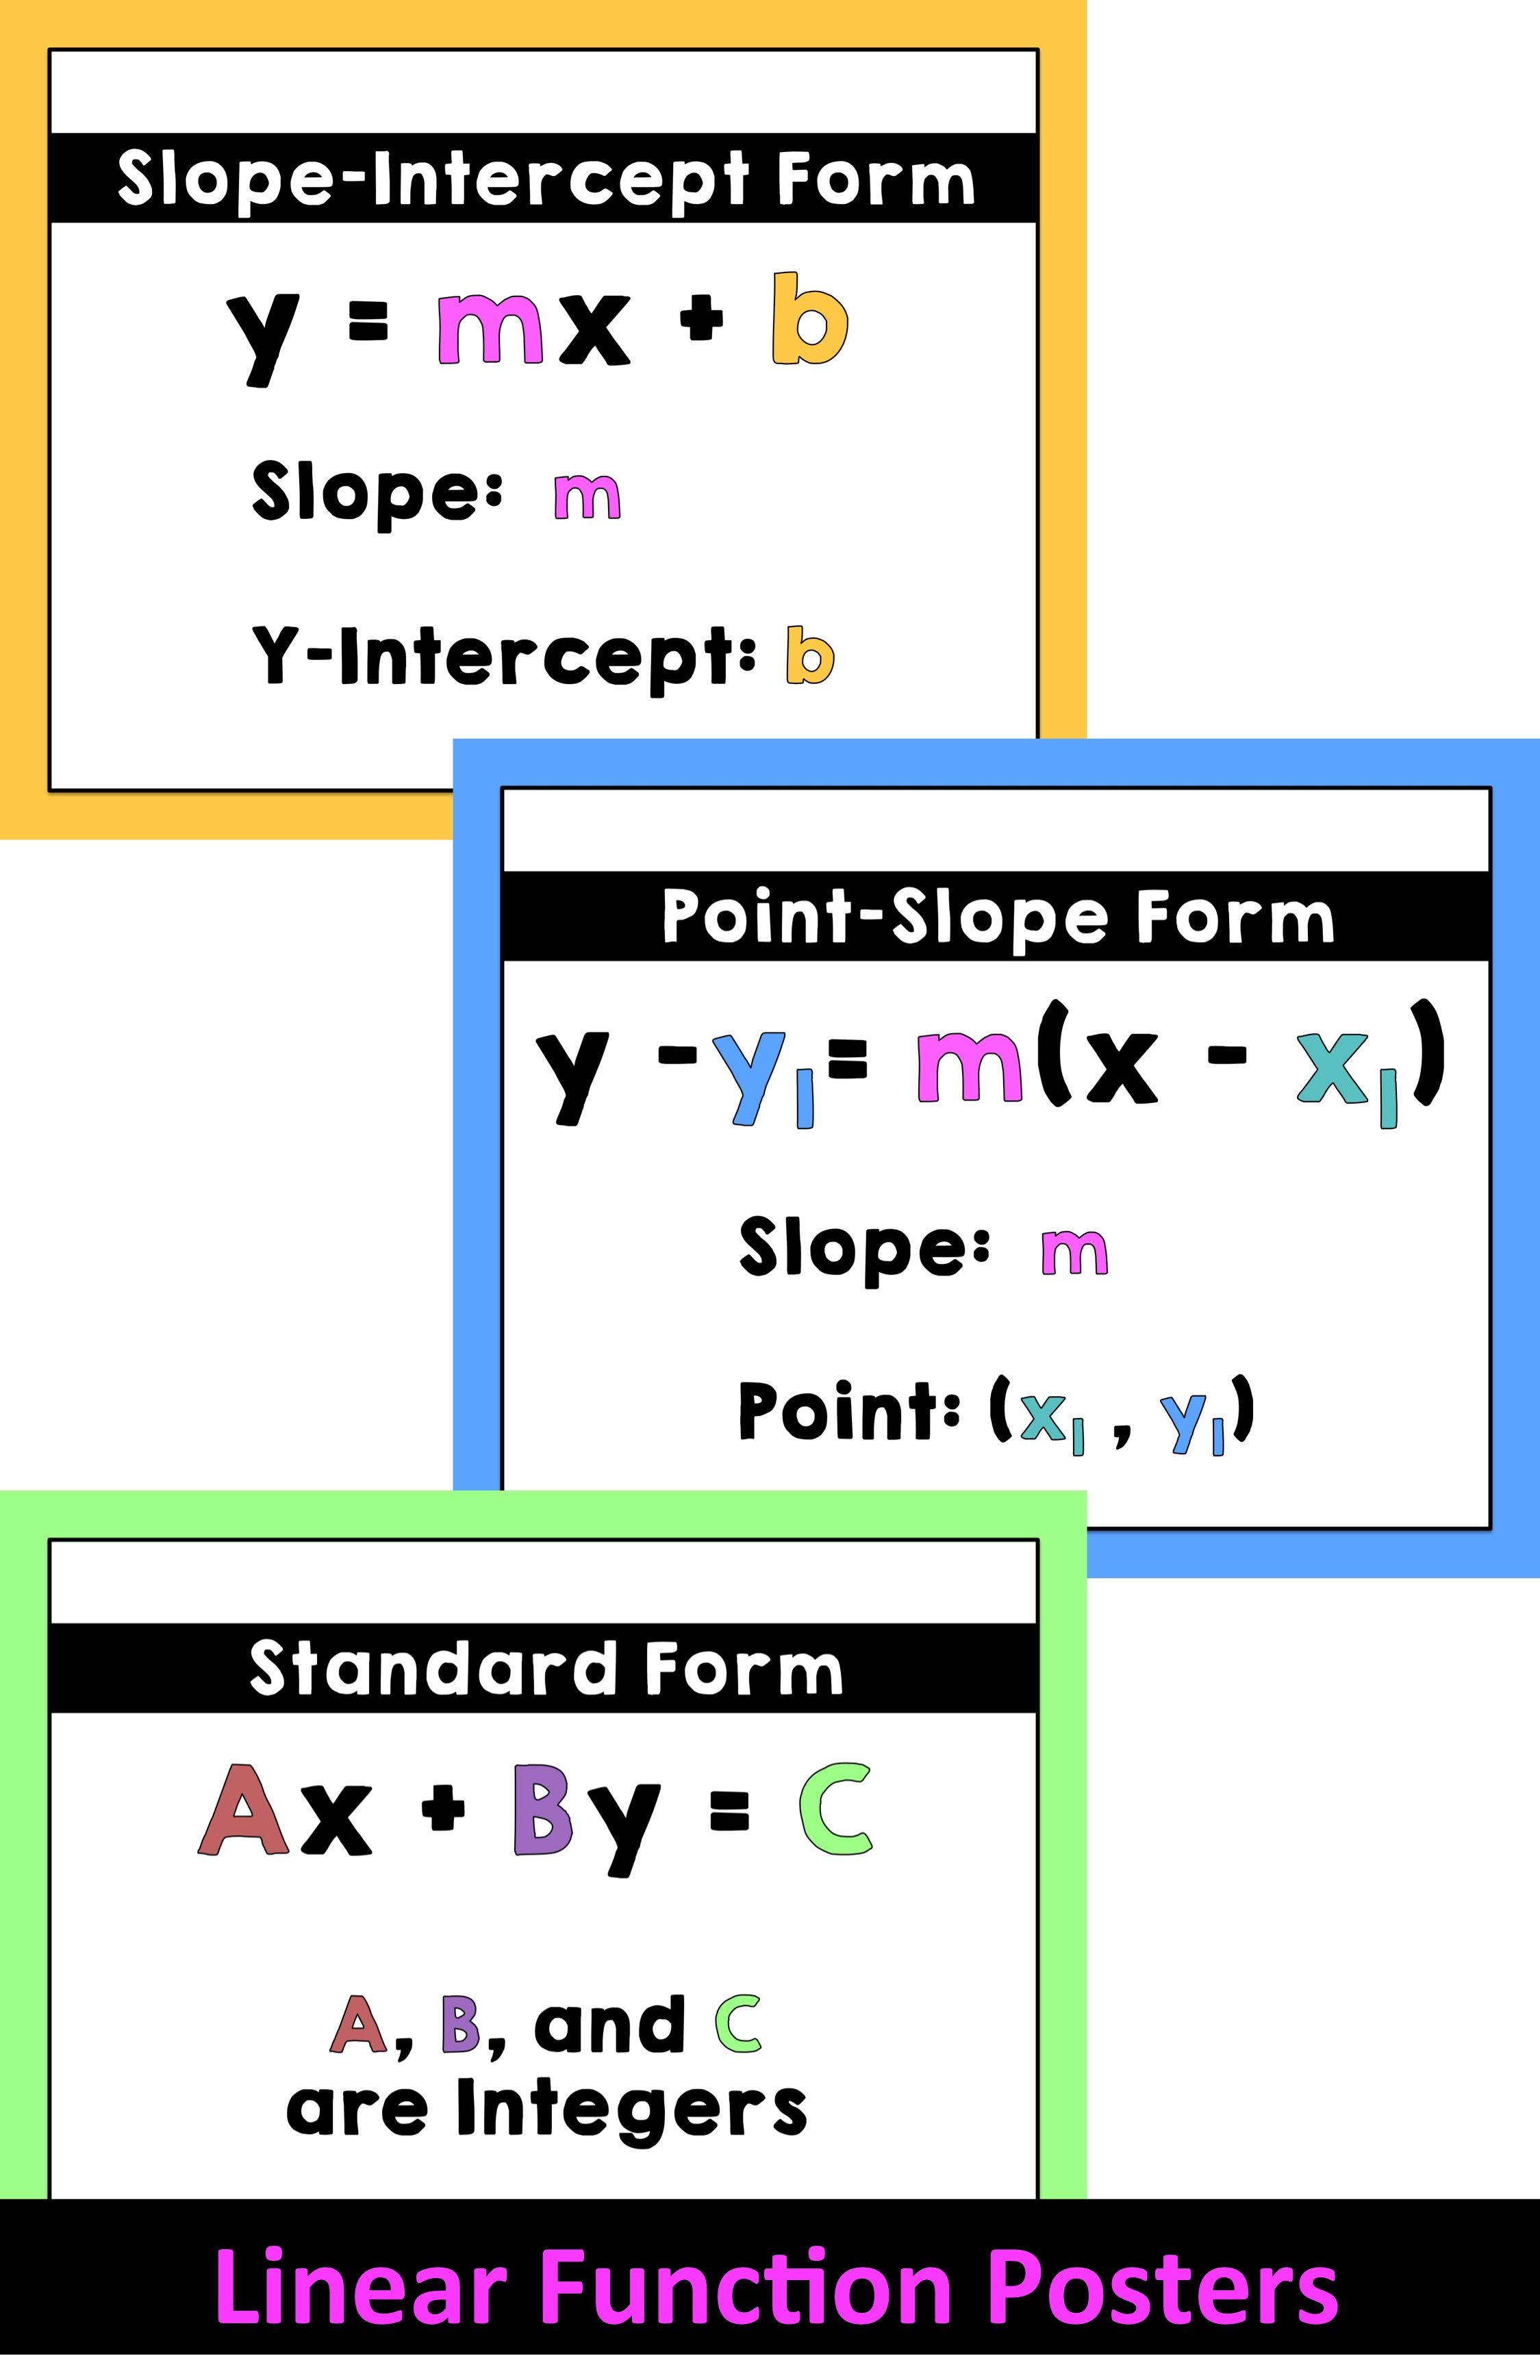 Linear Functions: Posters and Reference Sheet | Linear ...